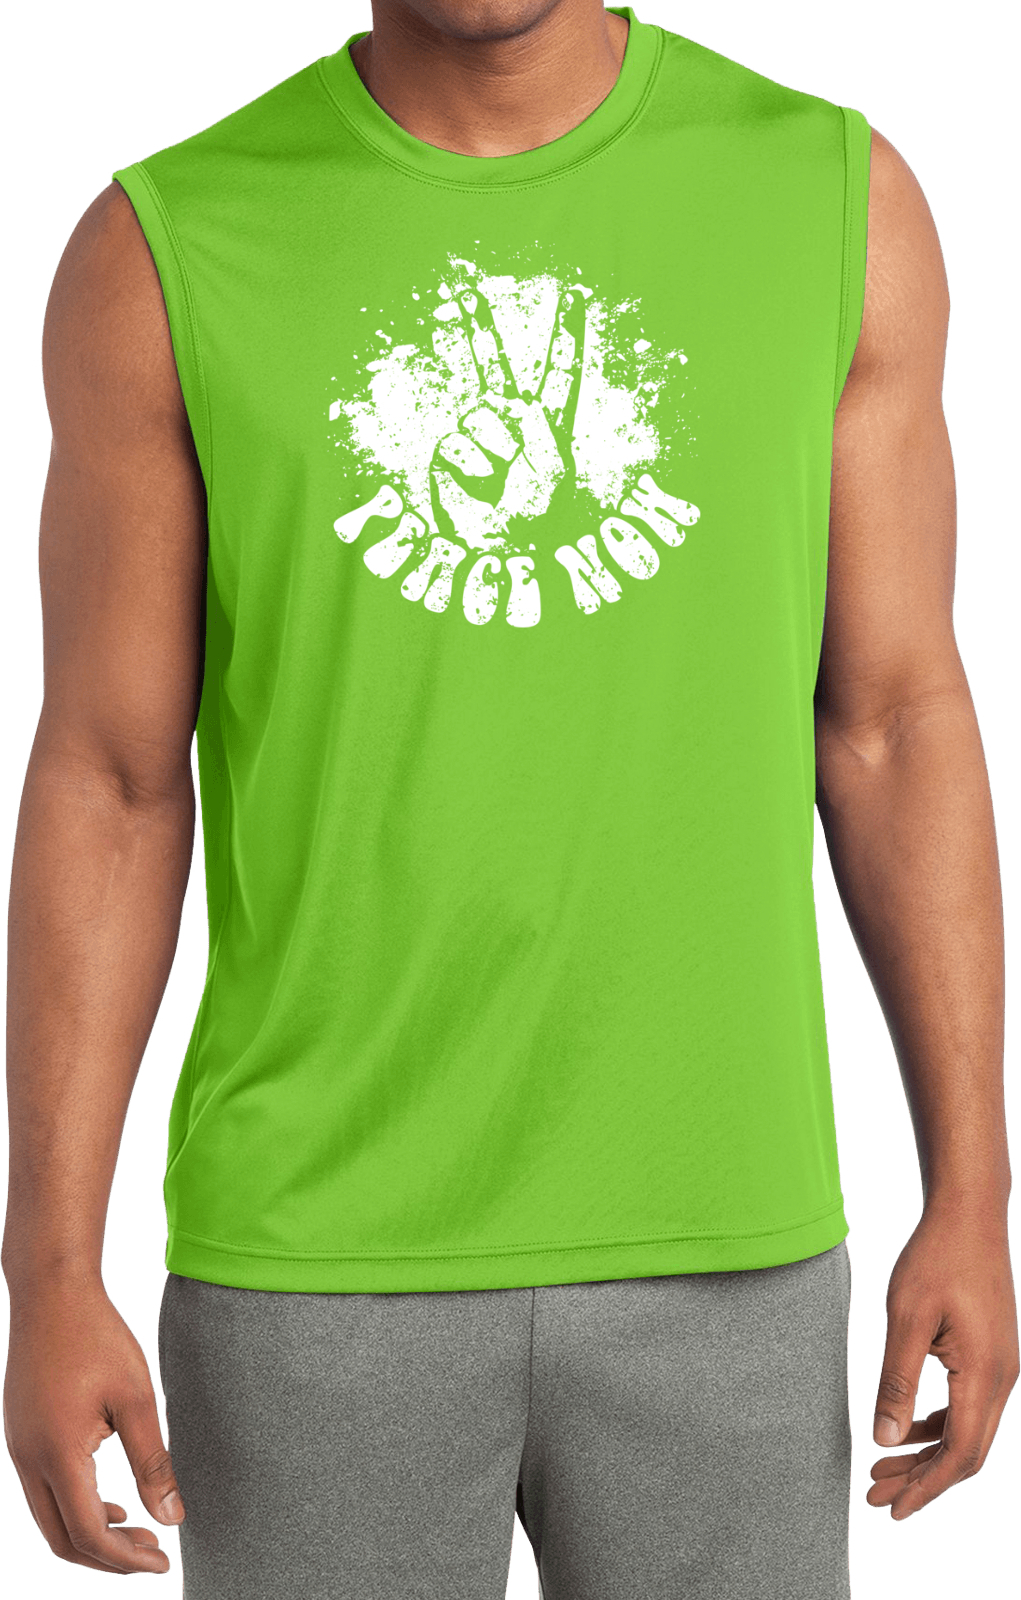 Mens peace shirt peace now sleeveless moisture wicking tee for Sweat wicking t shirts